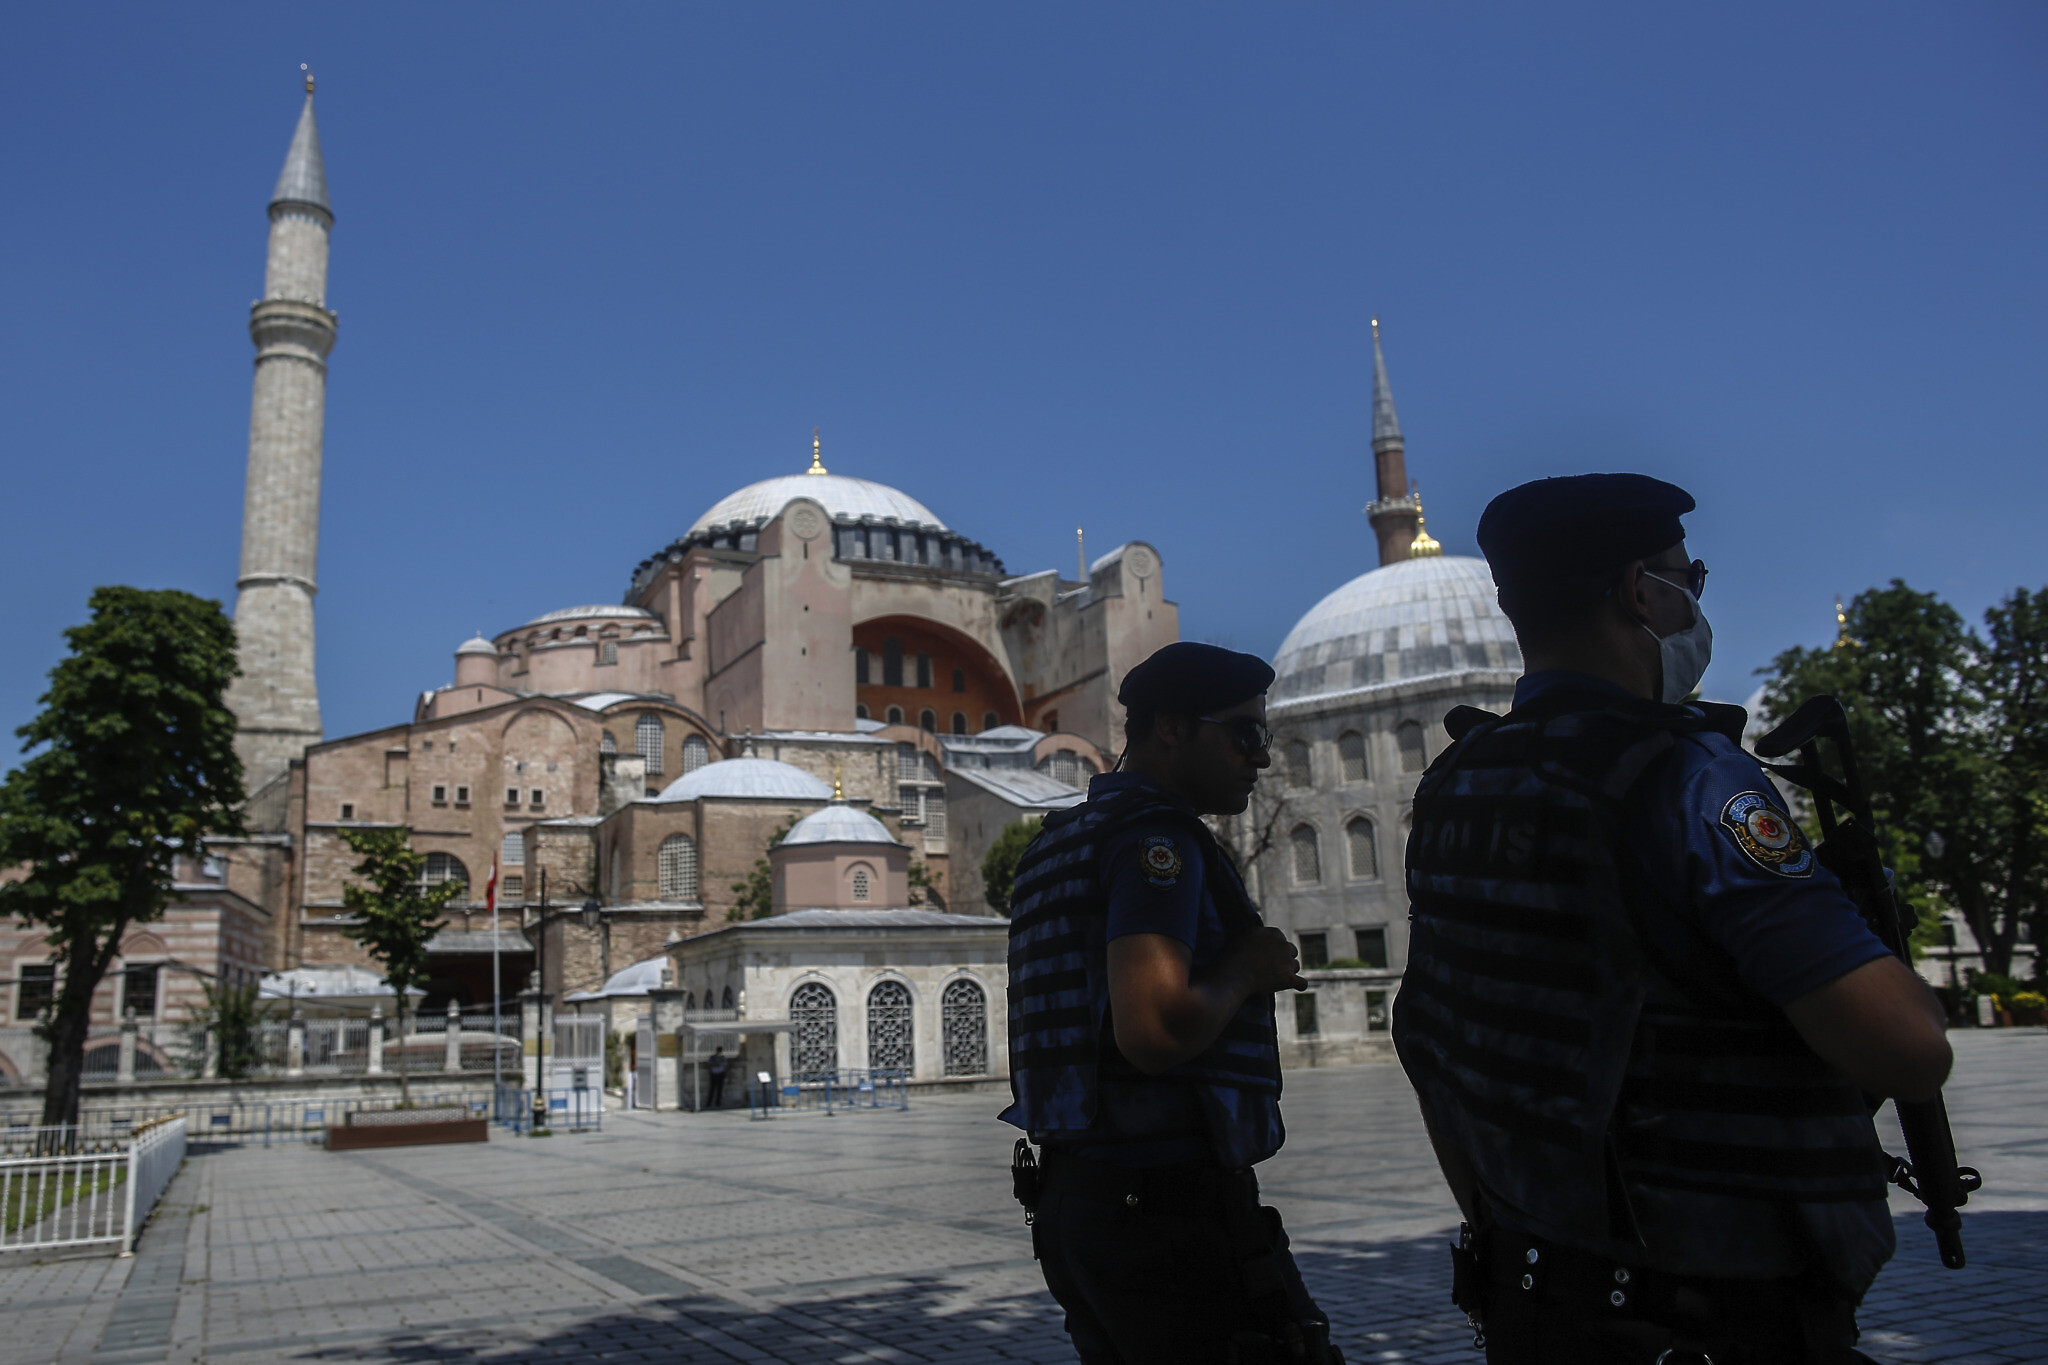 Greece strongly condemns decision to turn Hagia Sophia into a mosque